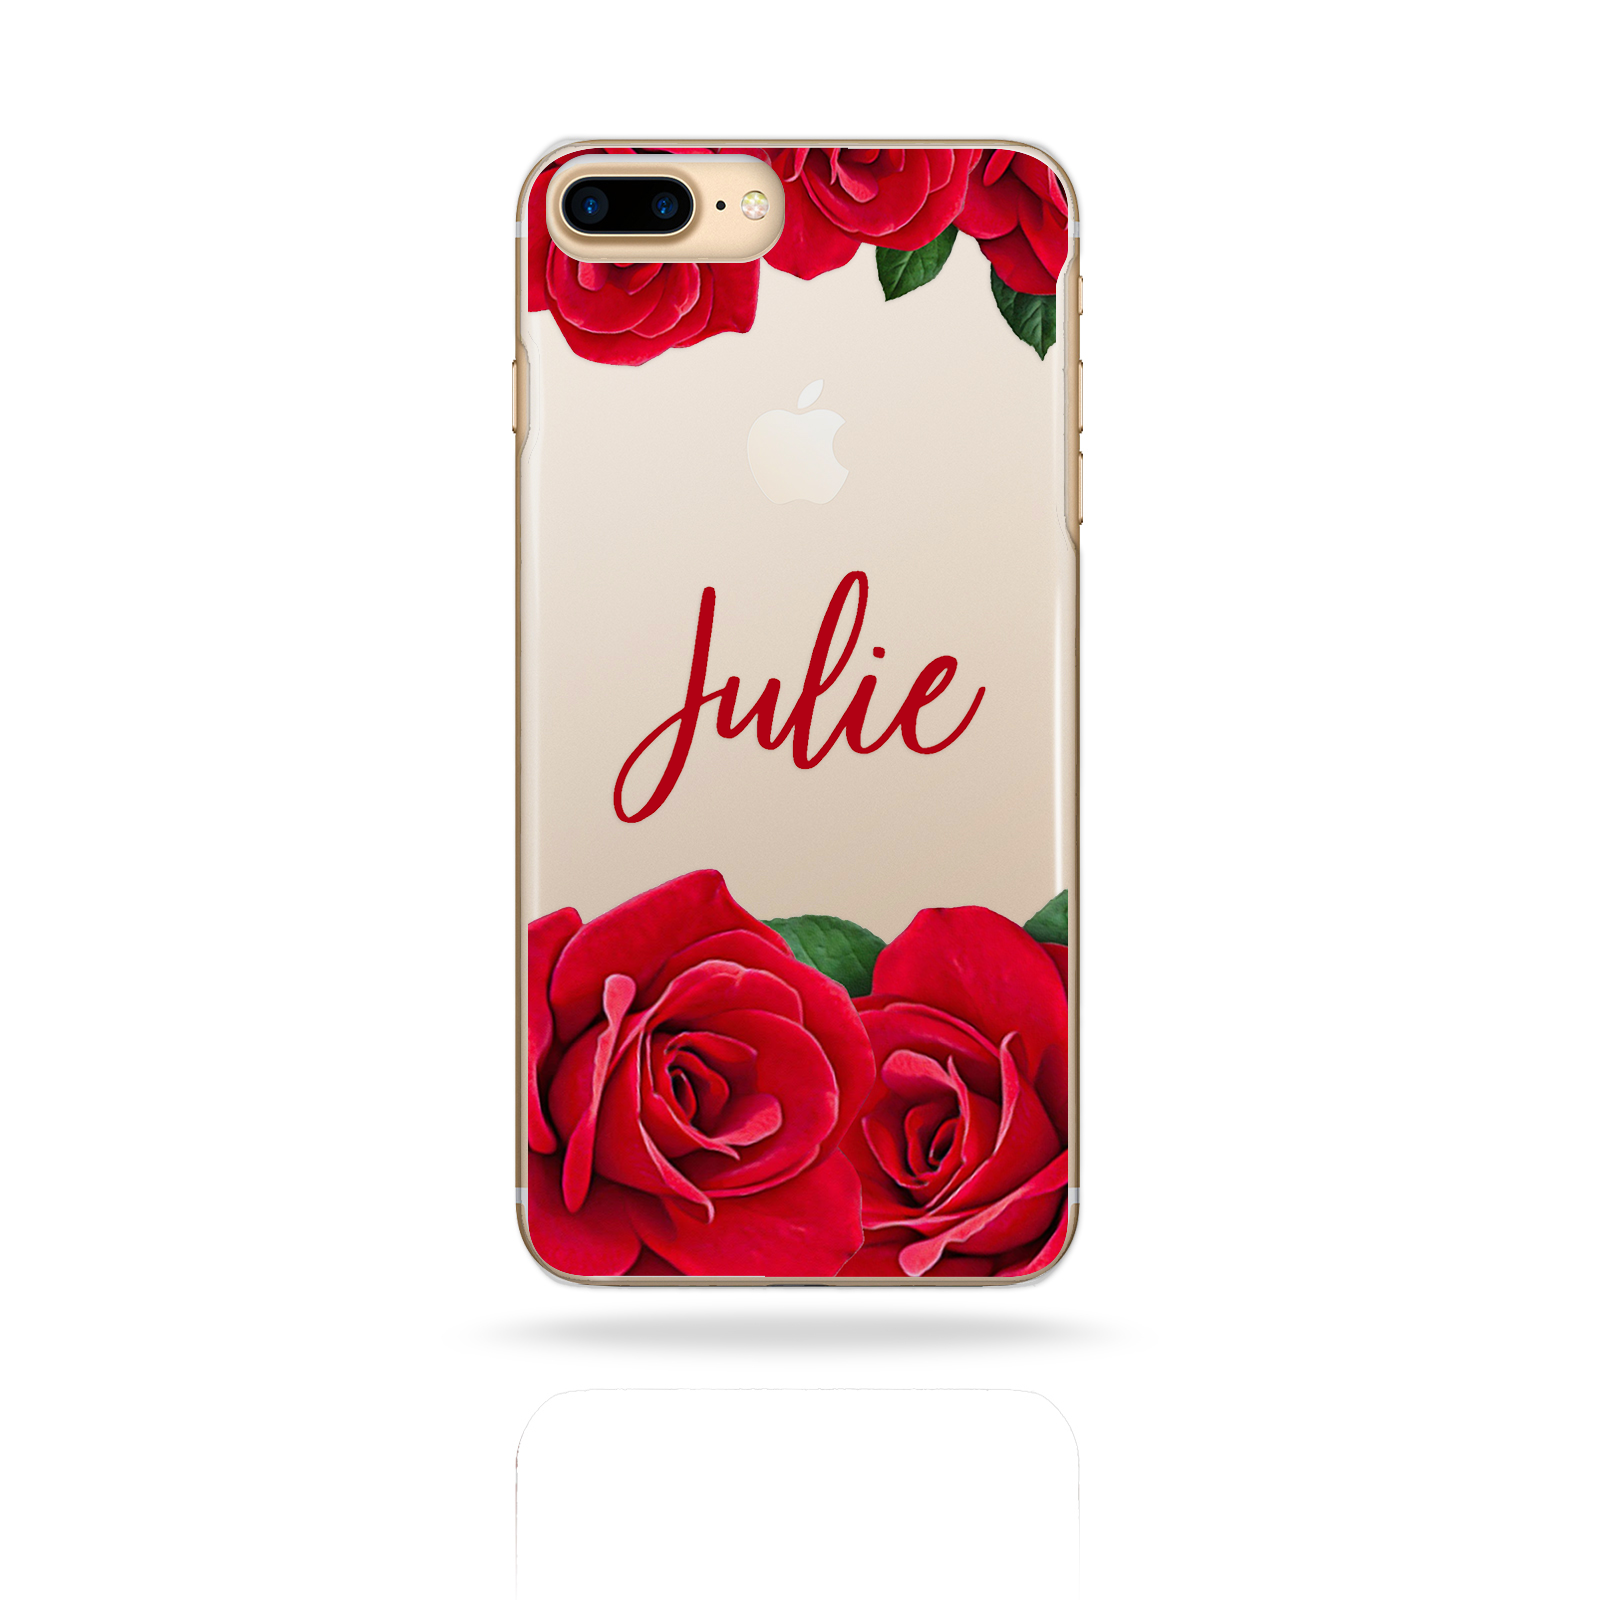 PERSONALISED-INITIALS-FLOWER-IPHONE-6-7-8-PLUS-X-CASE-CLEAR-HARD-COVER-FOR-APPLE